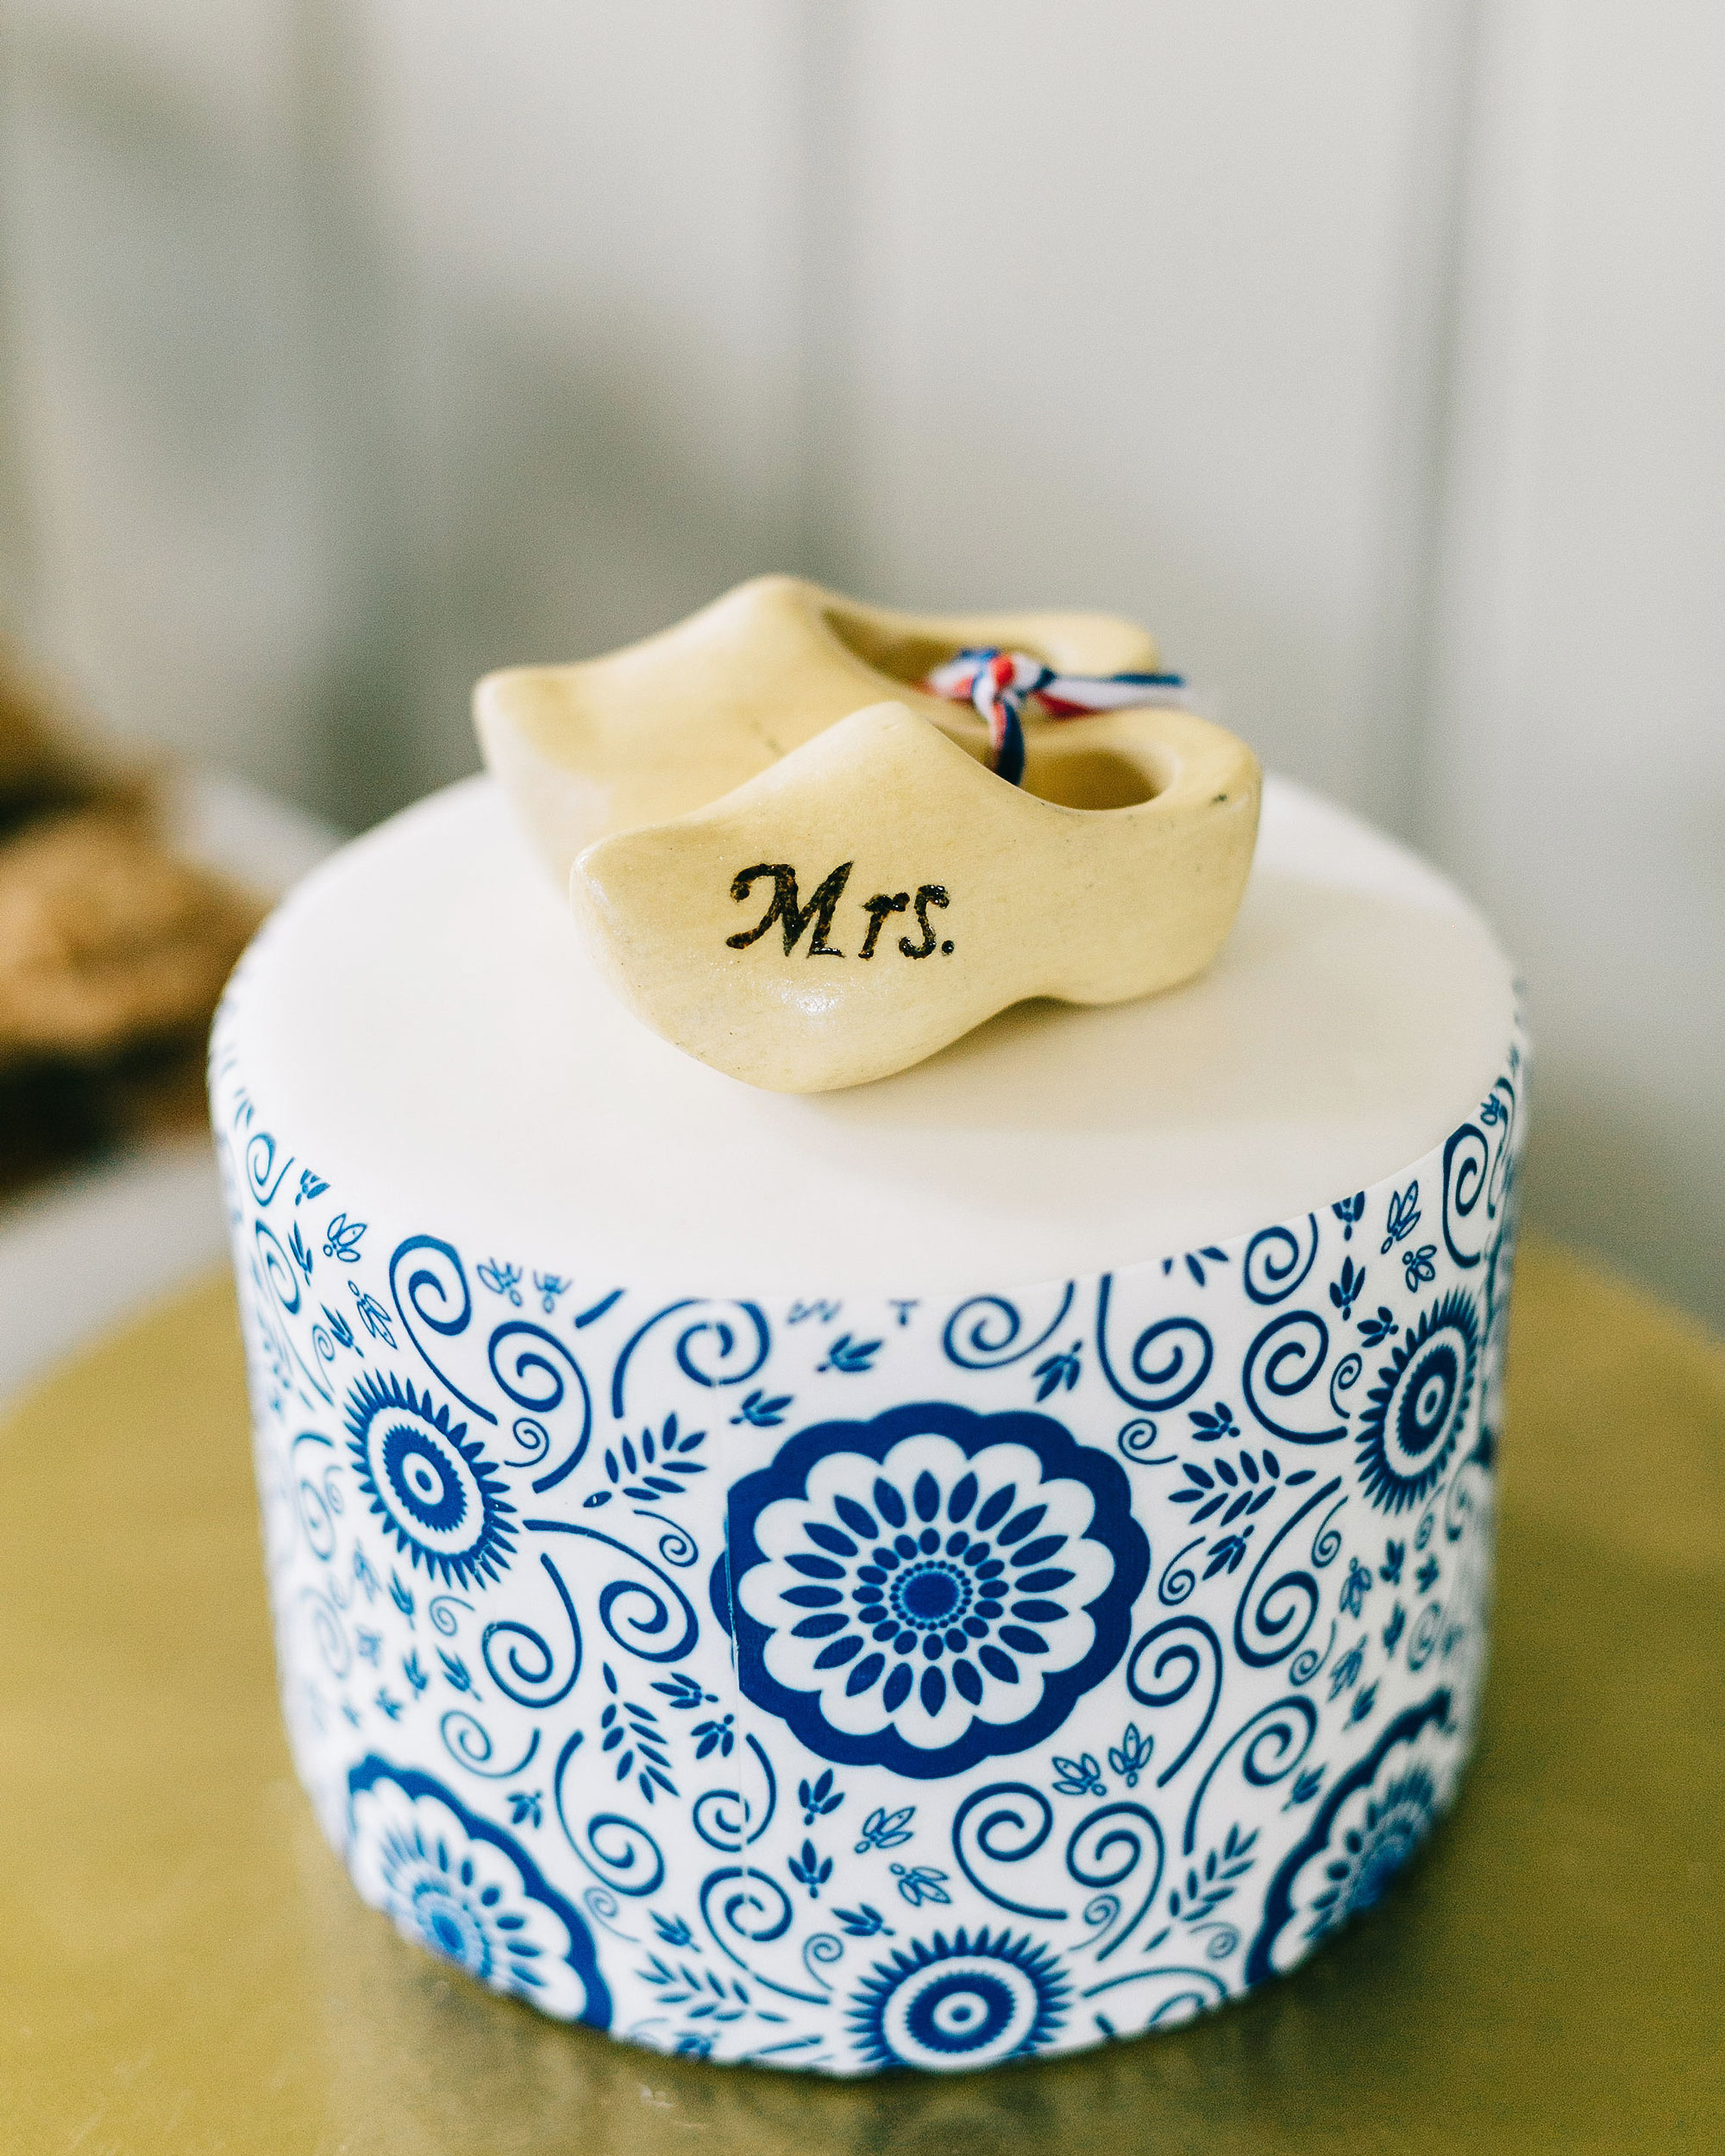 rachel-jurrie-nautical-wedding-cake-0310-s112778-0416.jpg